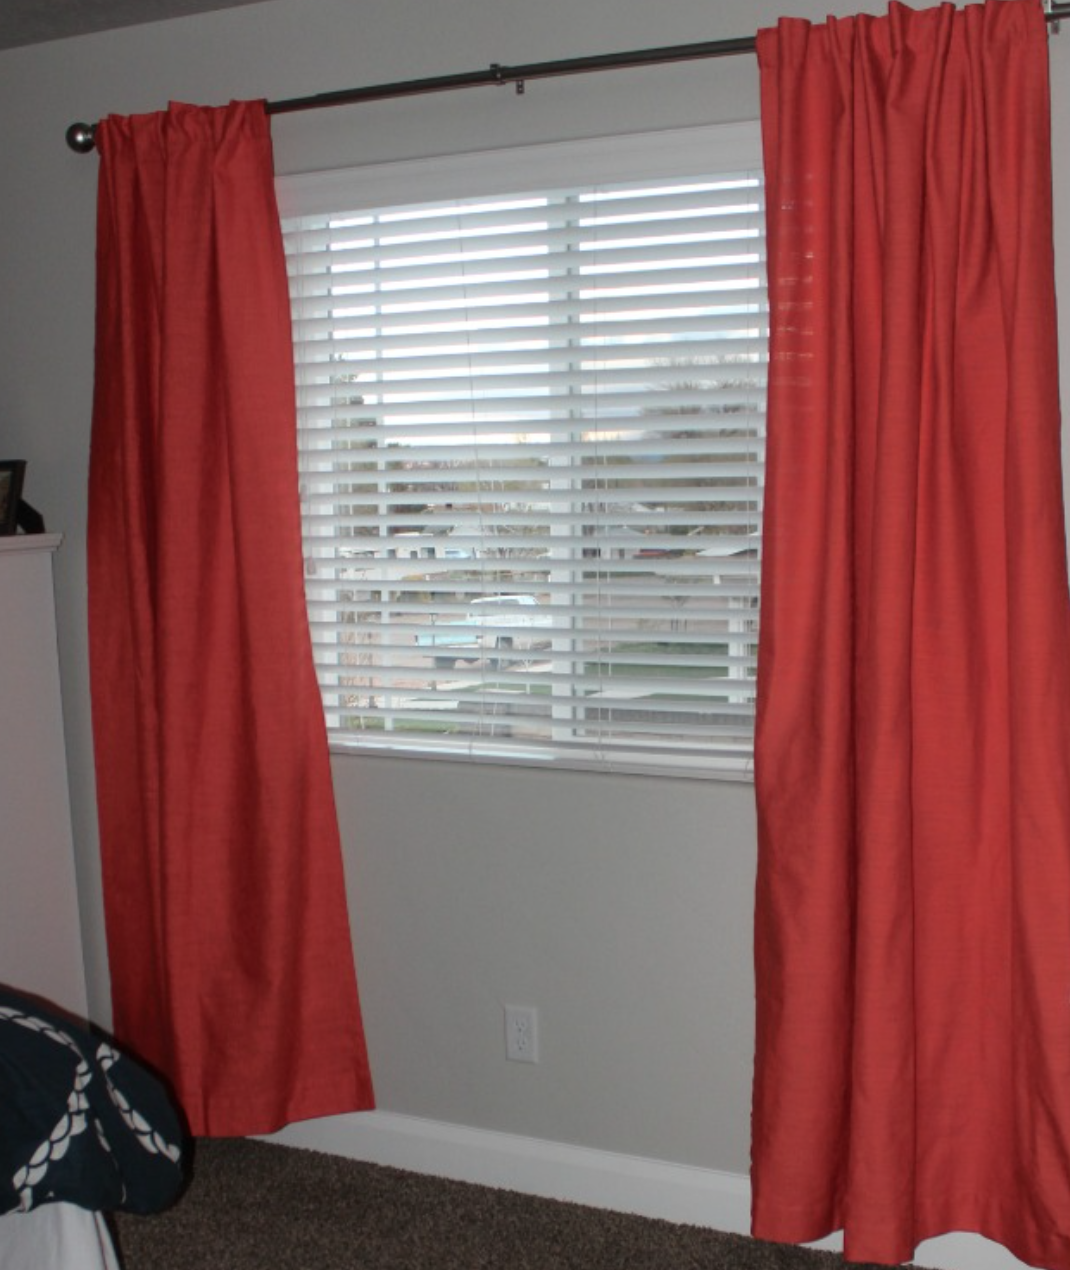 How Long Should Curtains Be For Short Window | Curtain ...